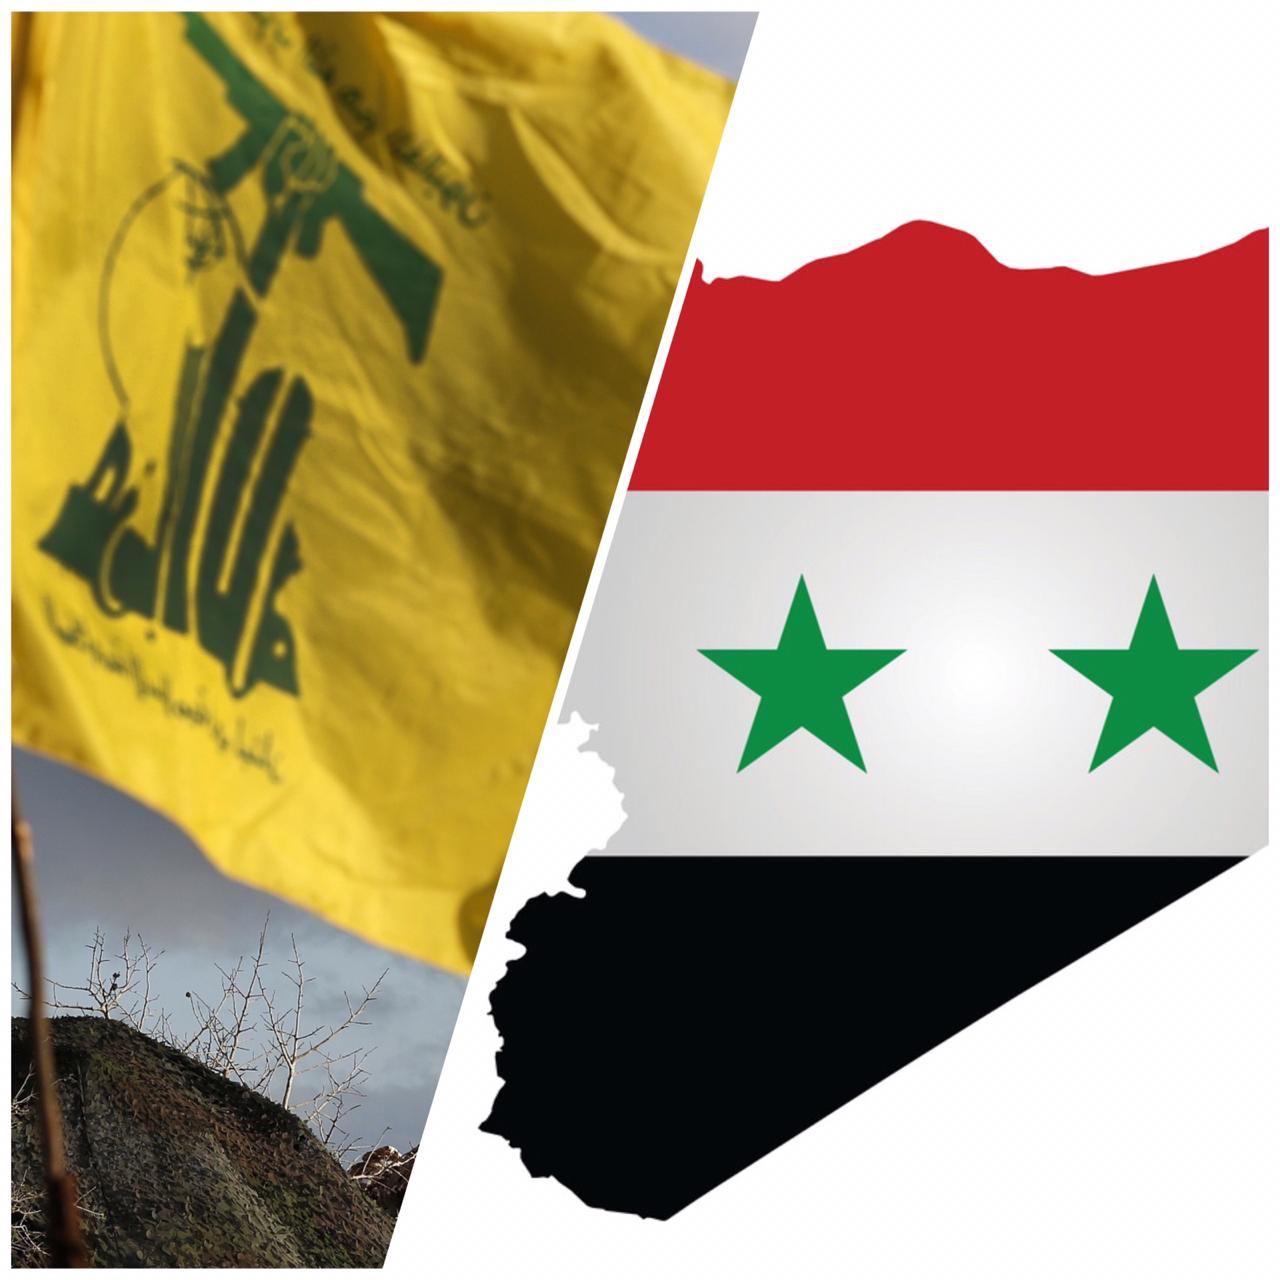 Hezbollah Existence in South Syria Is More Than Recently Revealed: Israeli Source